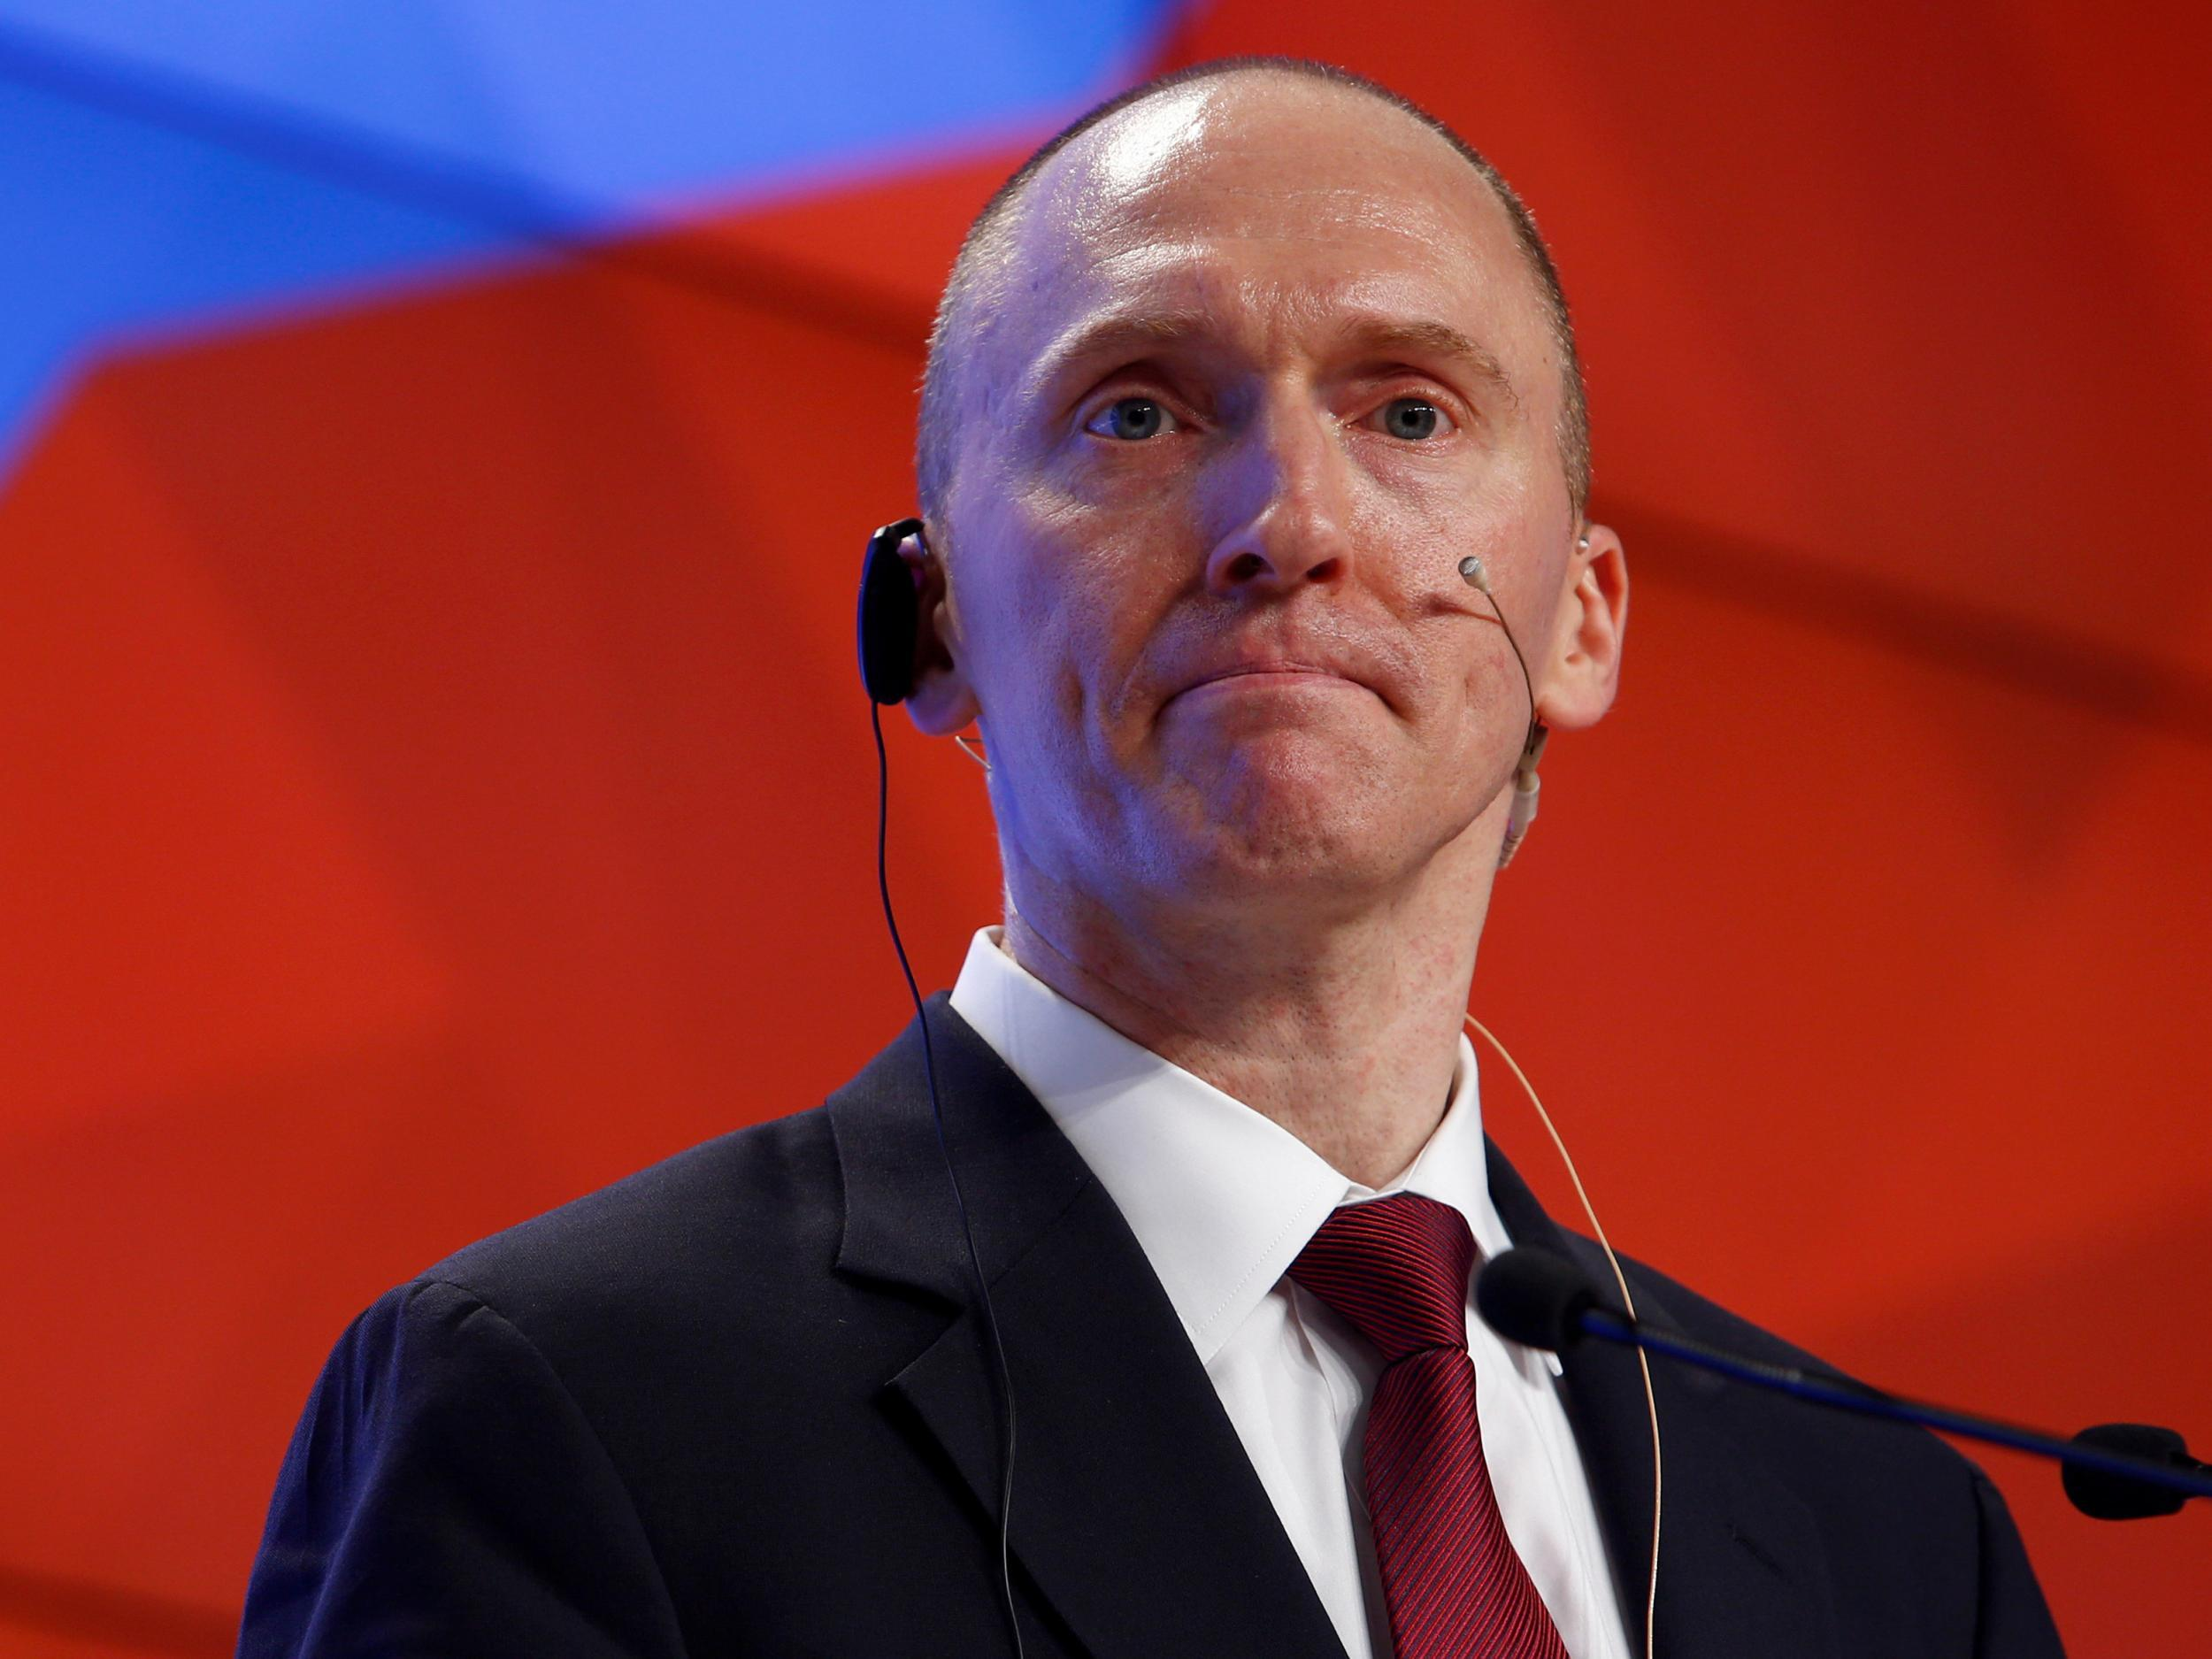 Donald Trump former aide Carter Page refuses to provide Russia contacts to Senate